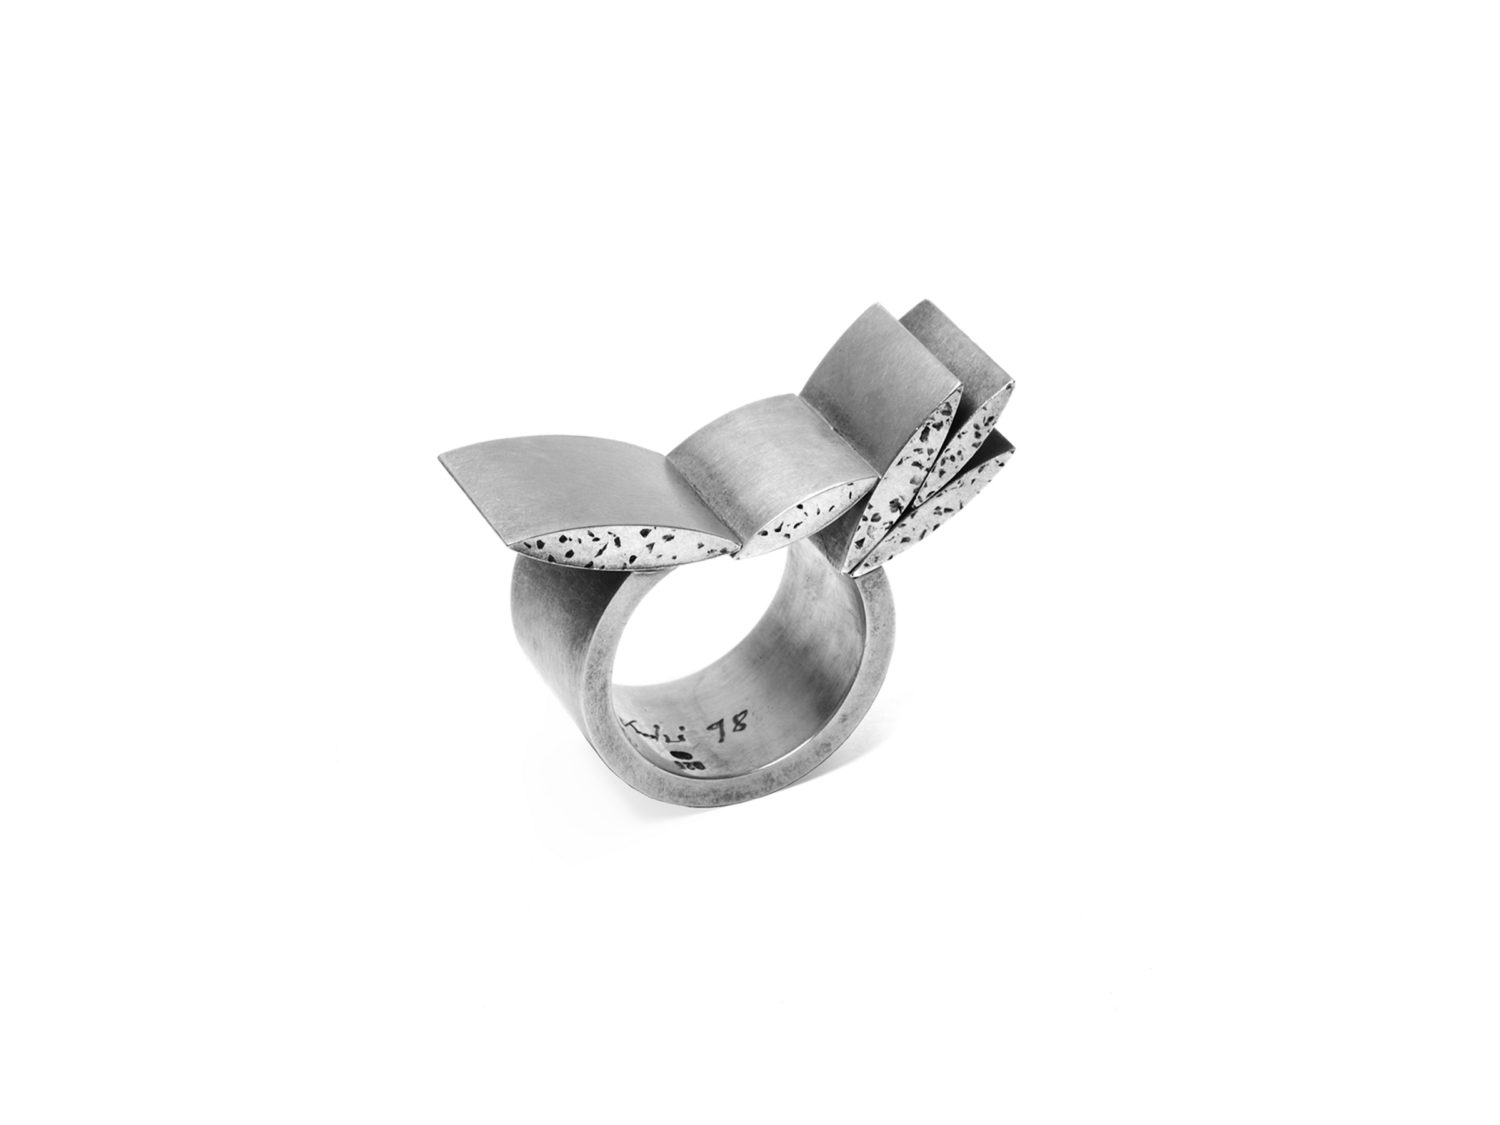 RING, SILVER, 1998